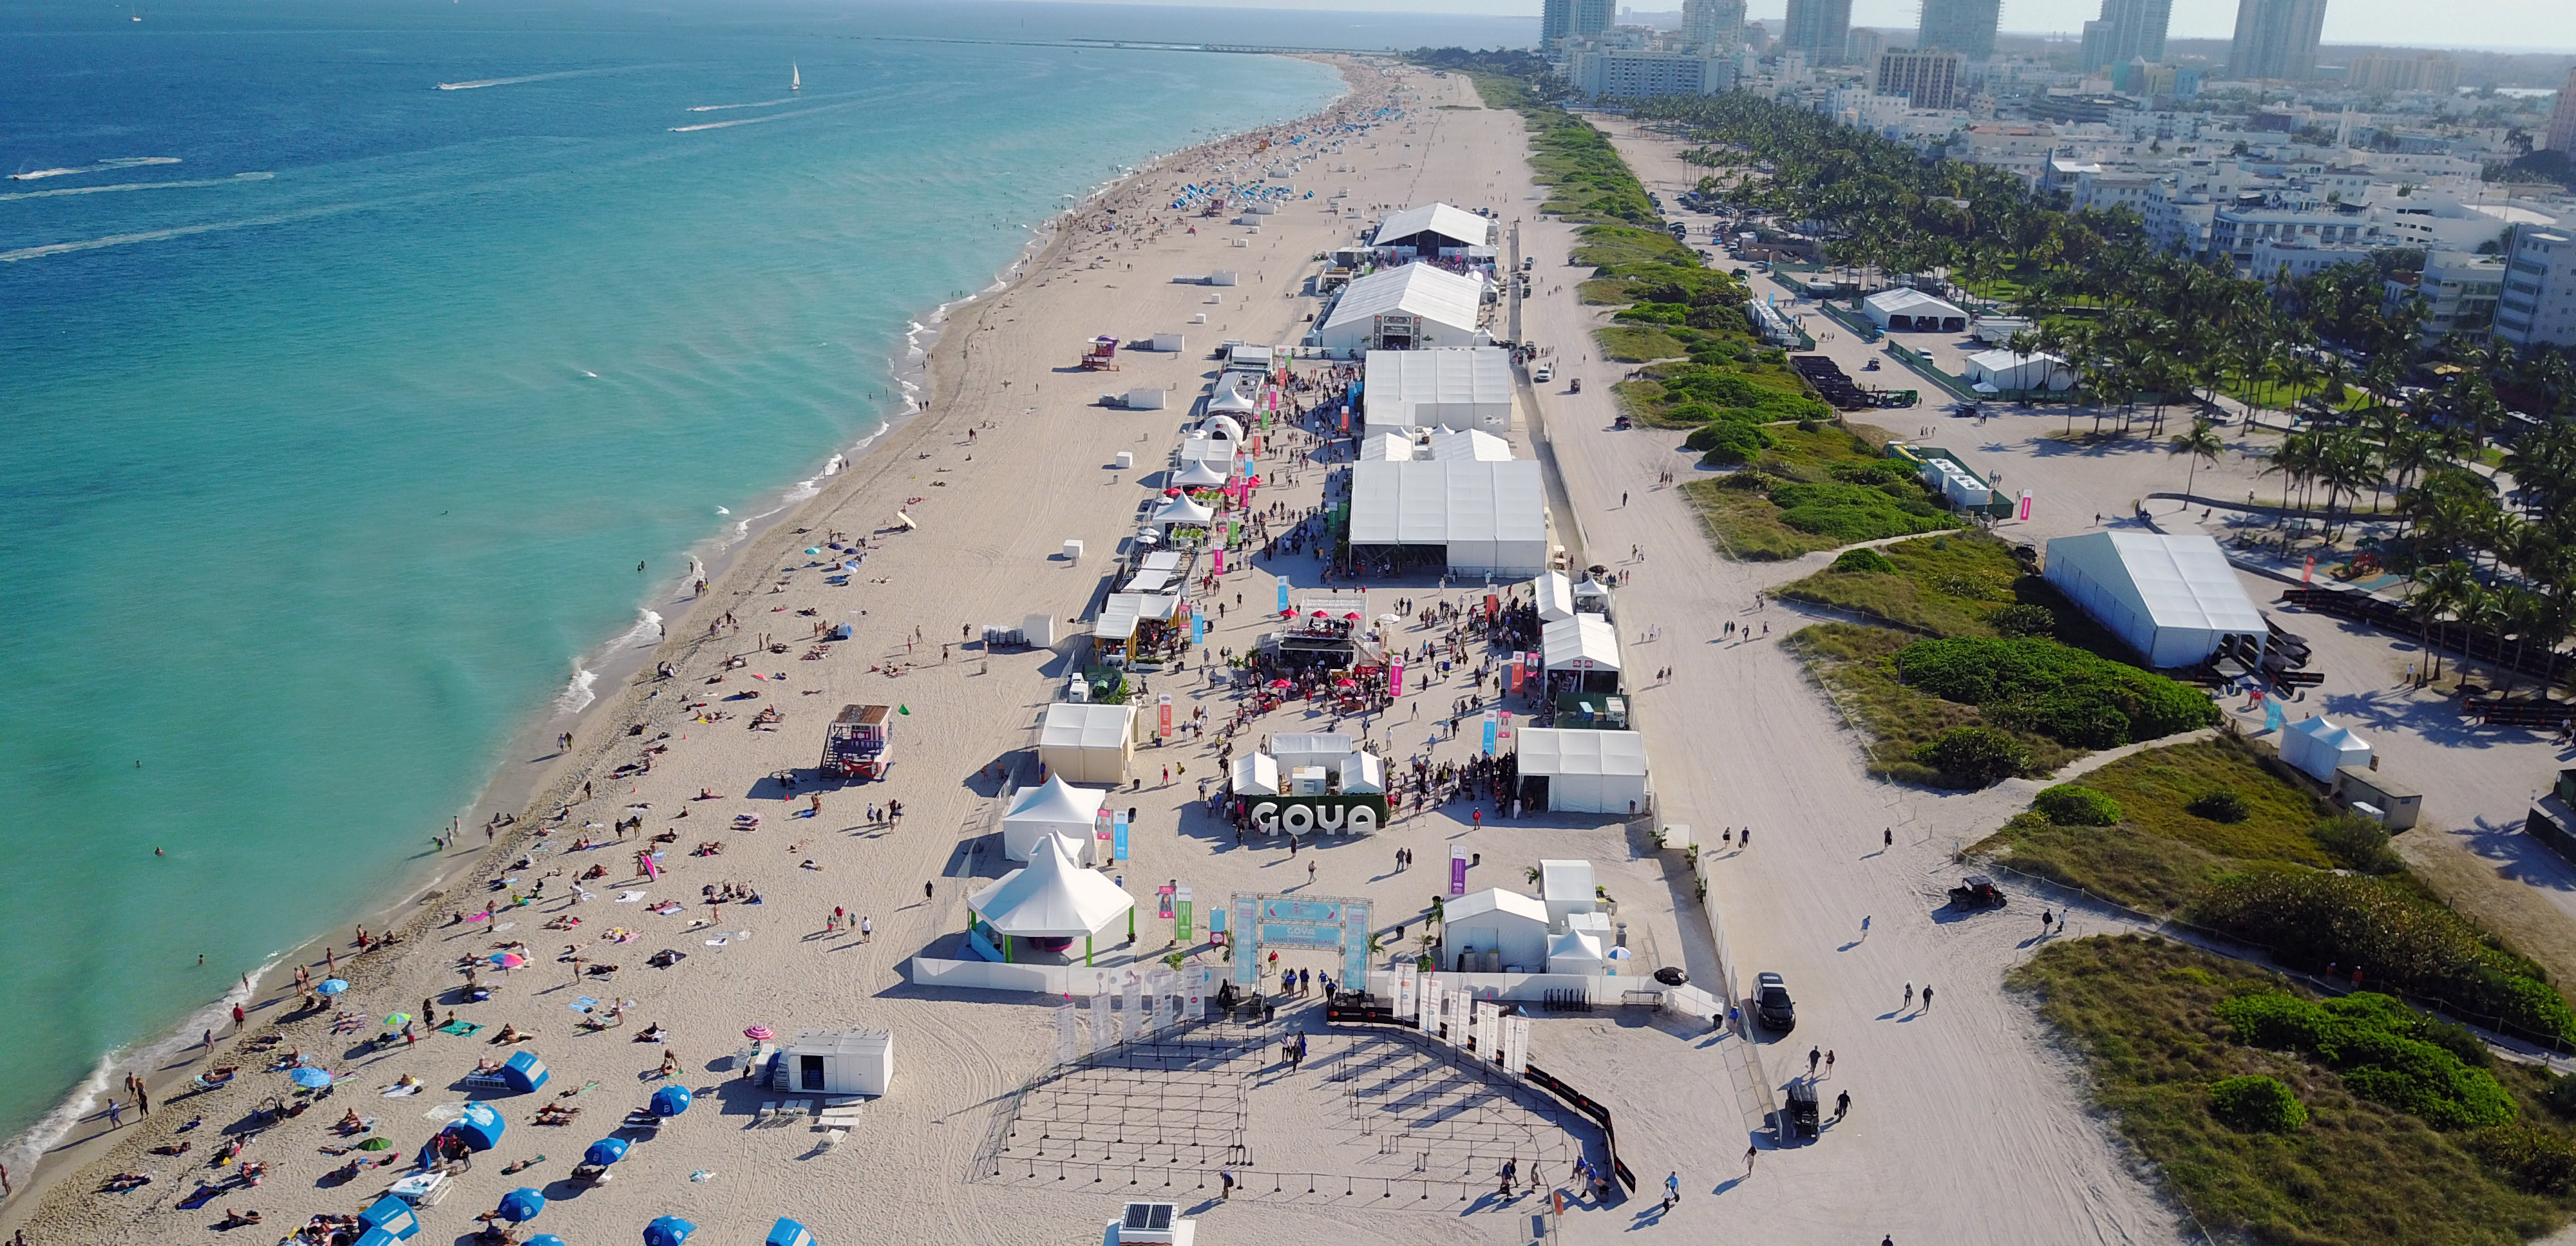 Miami Beach Welcomes Food and Wine Lovers for the 20th anniversary of the Food Network & Cooking Channel South Beach Wine & Food Festival presented by Capital One.